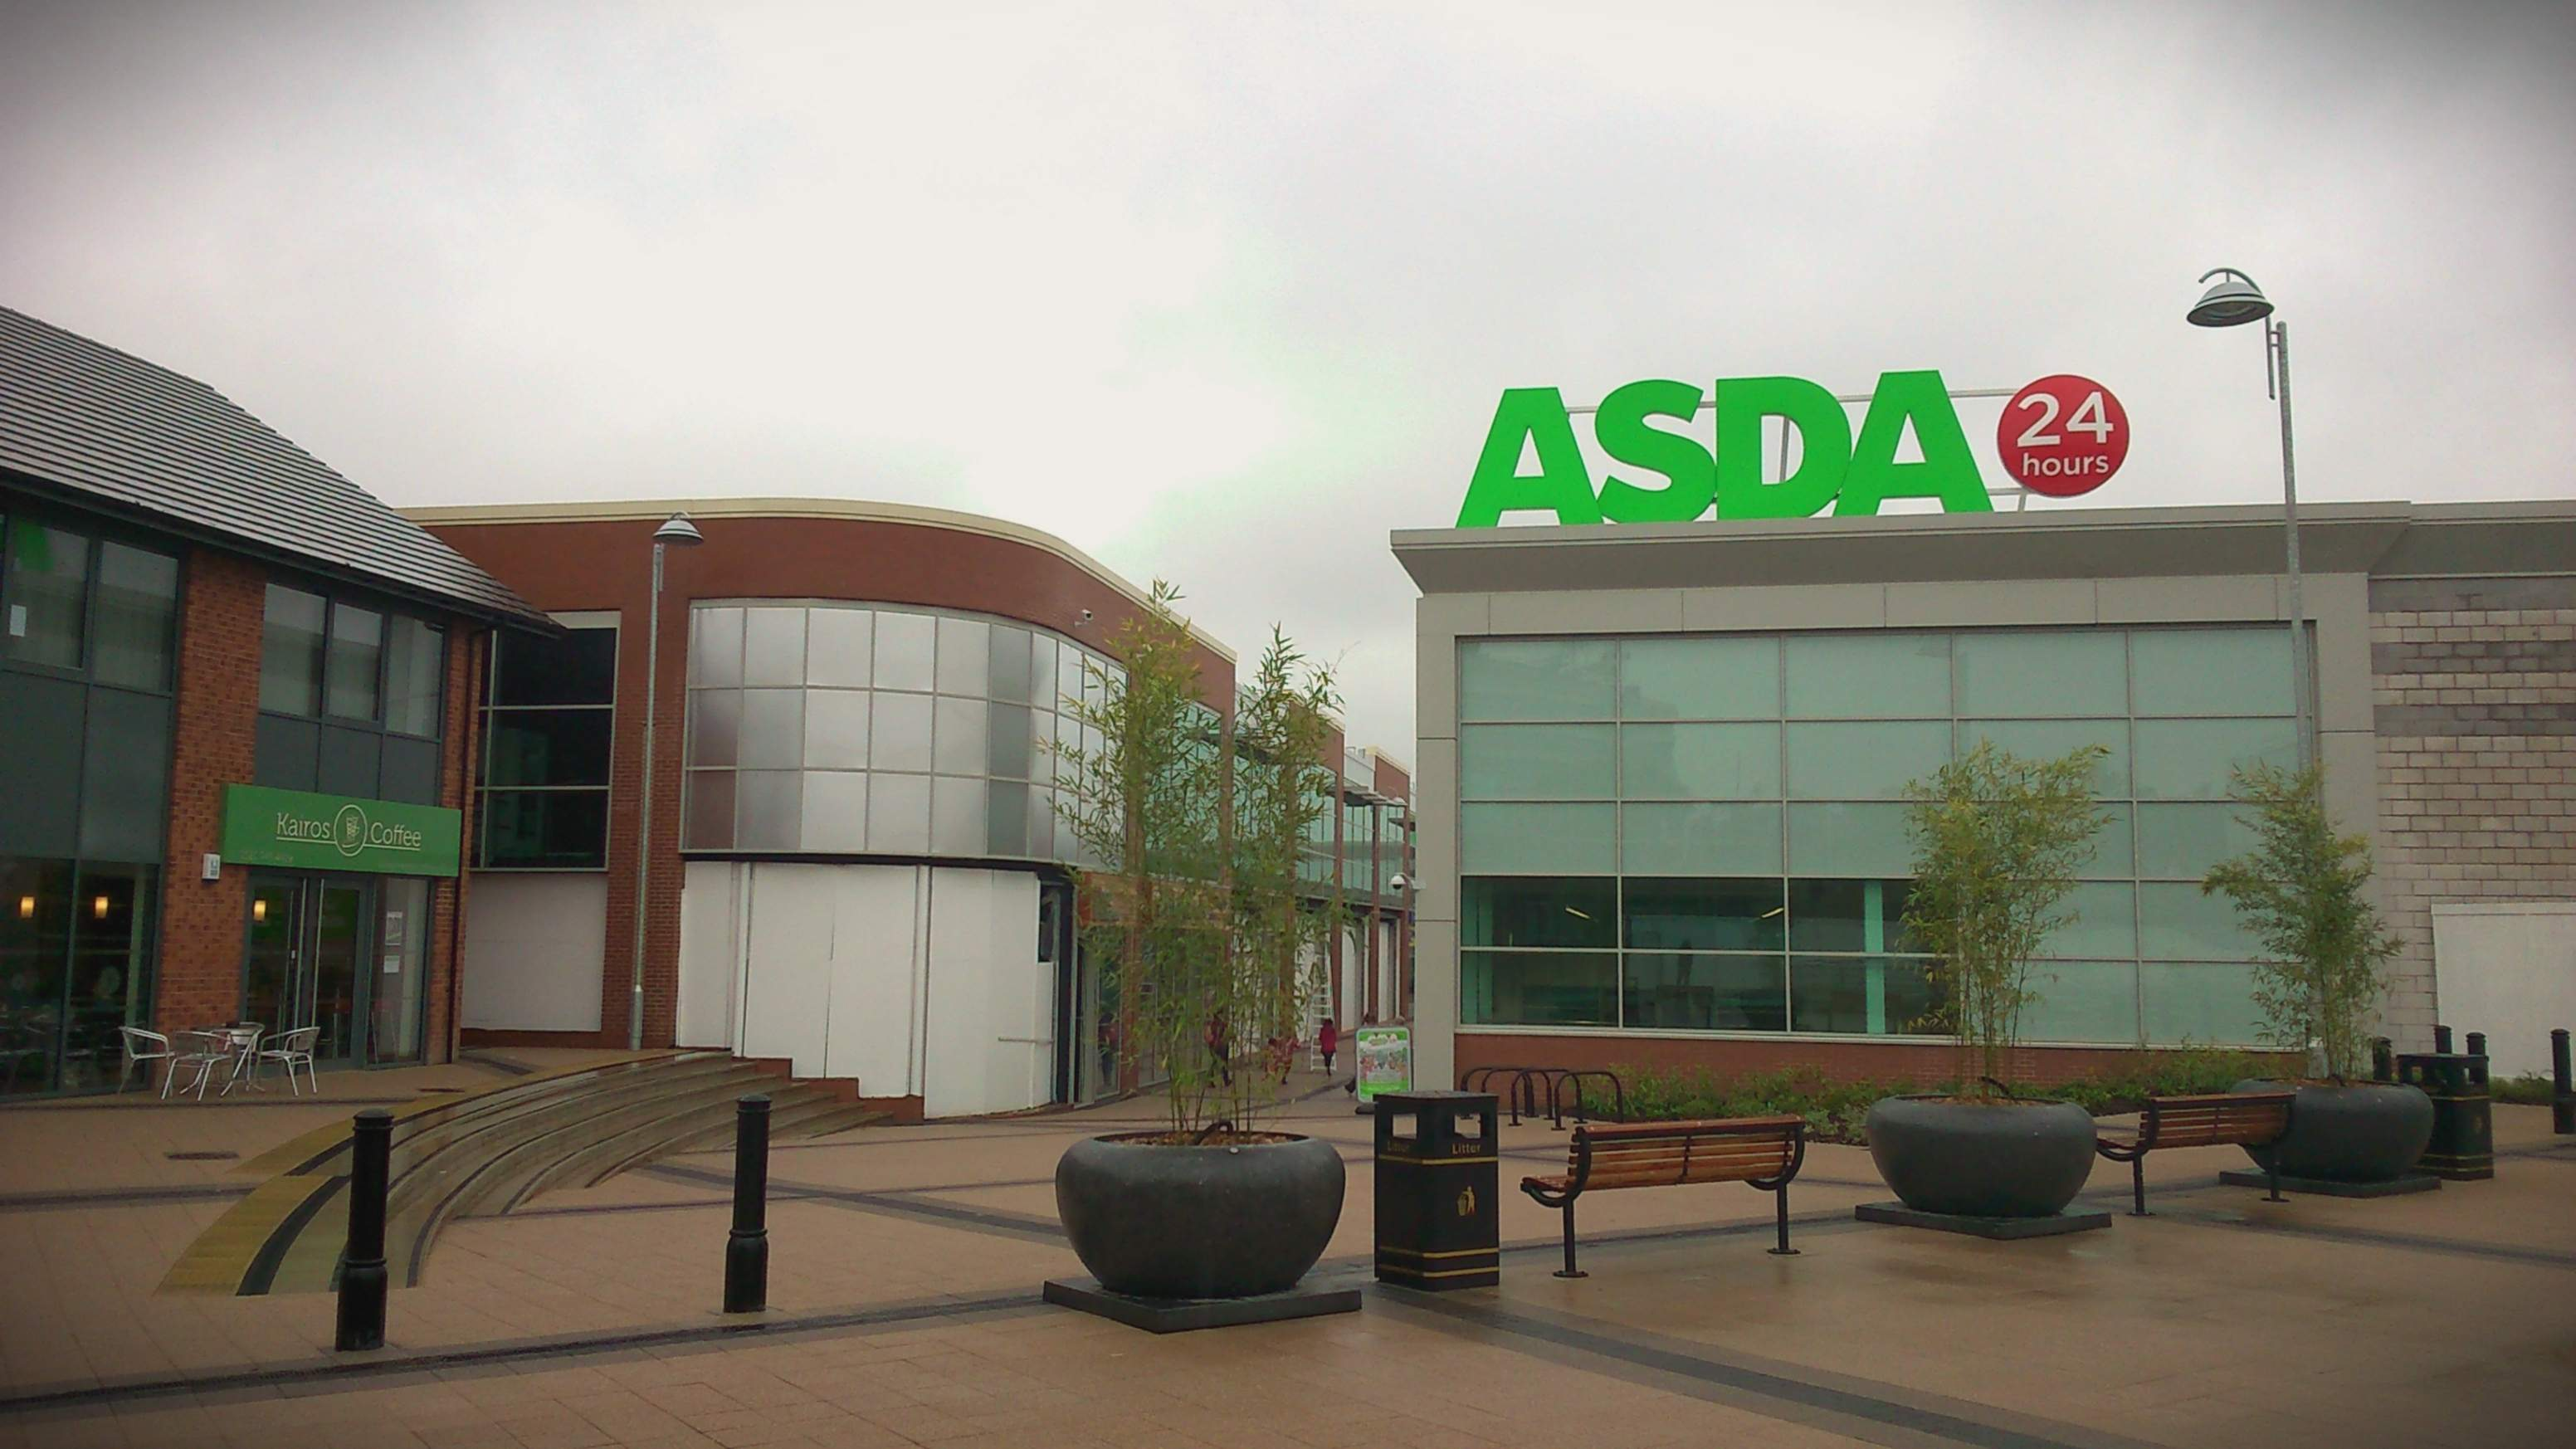 Asda, merger